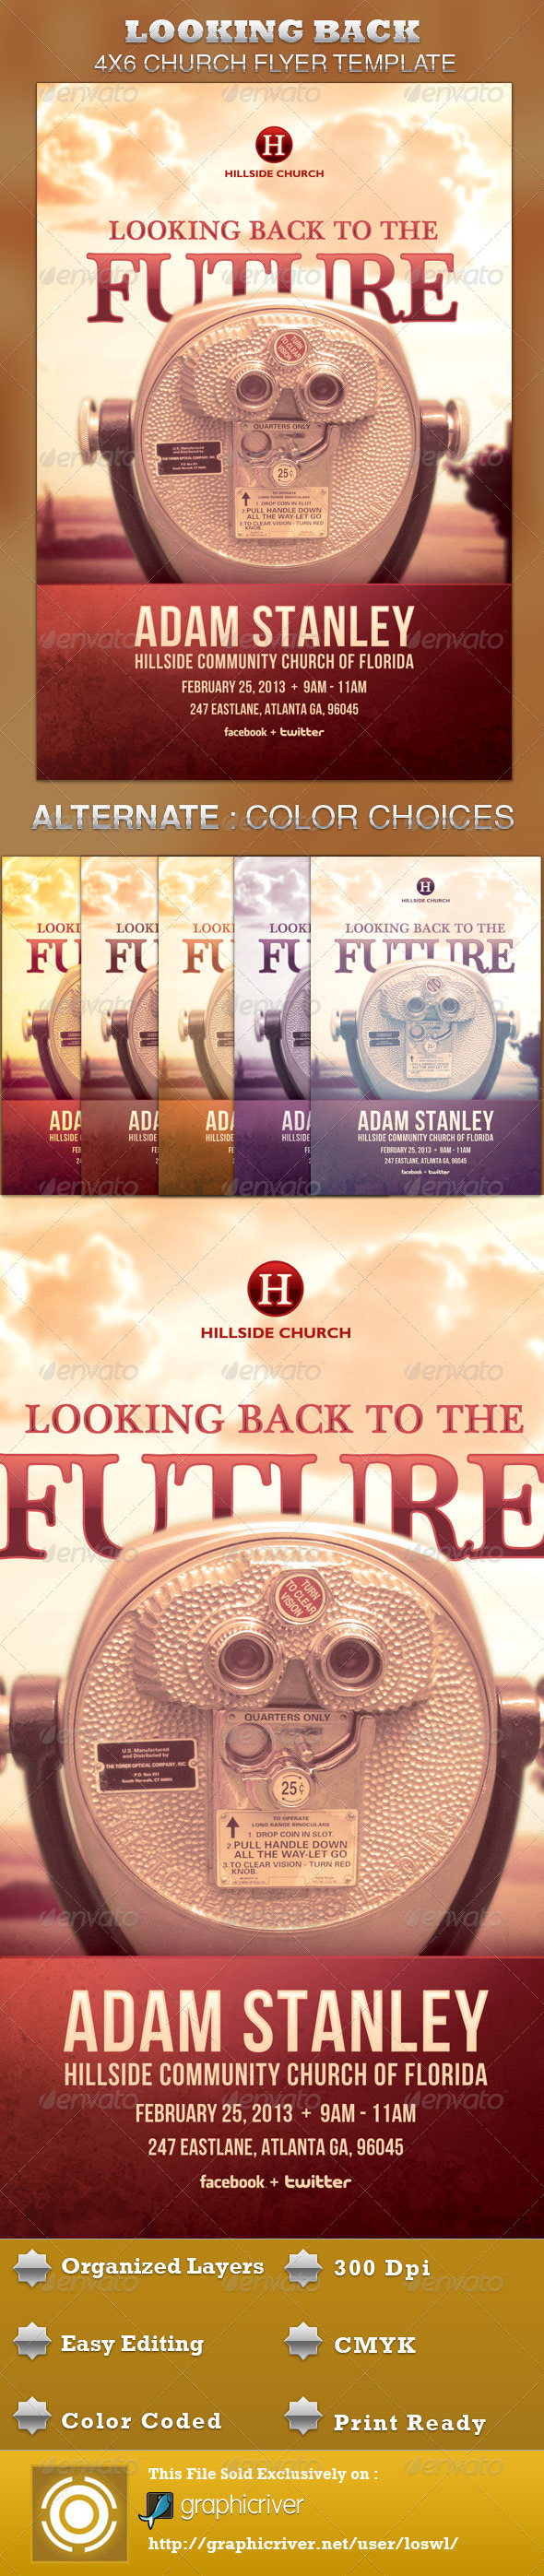 Looking Back to the Future Church Flyer Template - Church Flyers